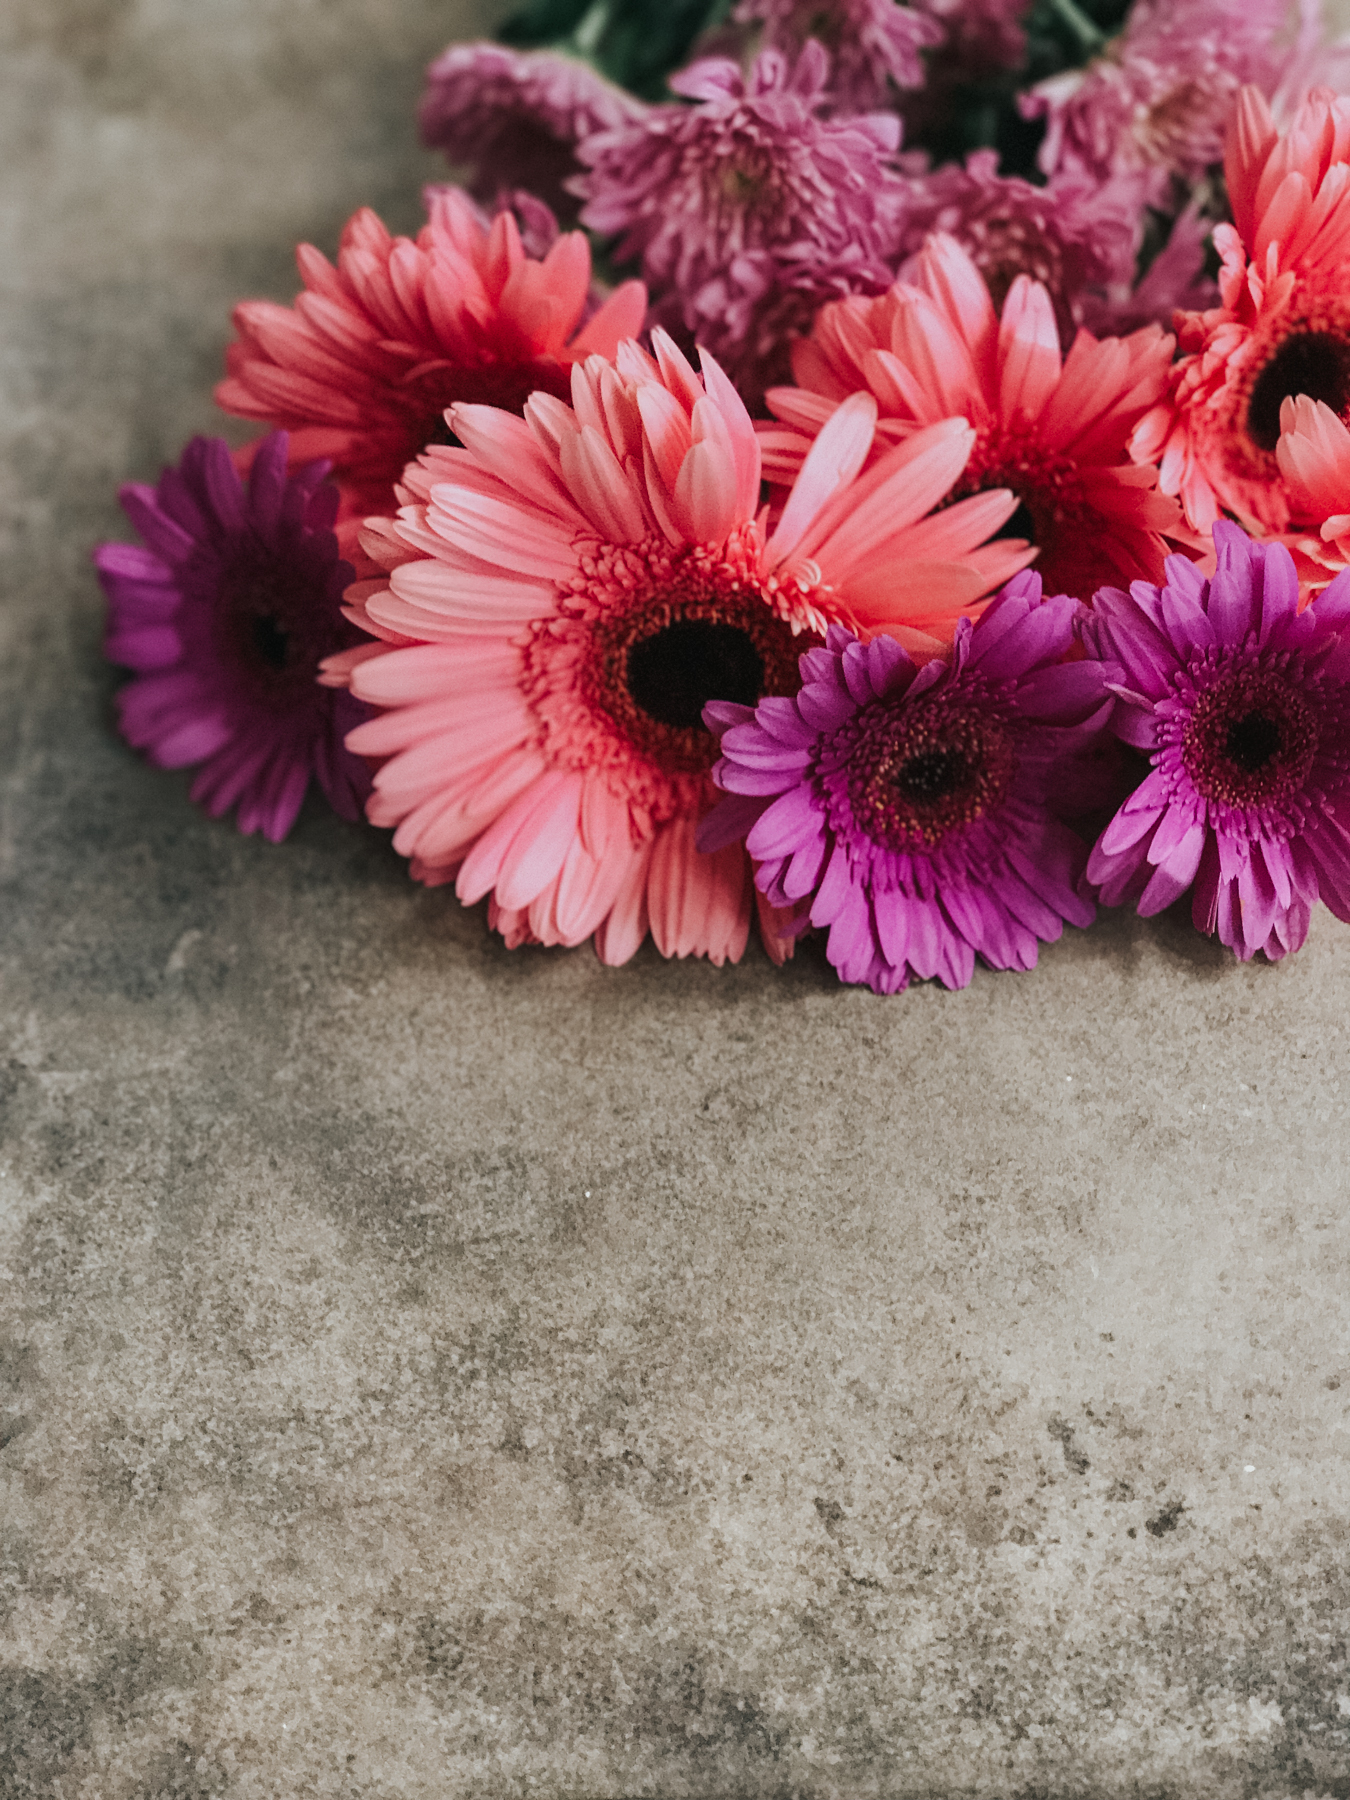 floral photography, pink and purple flowers